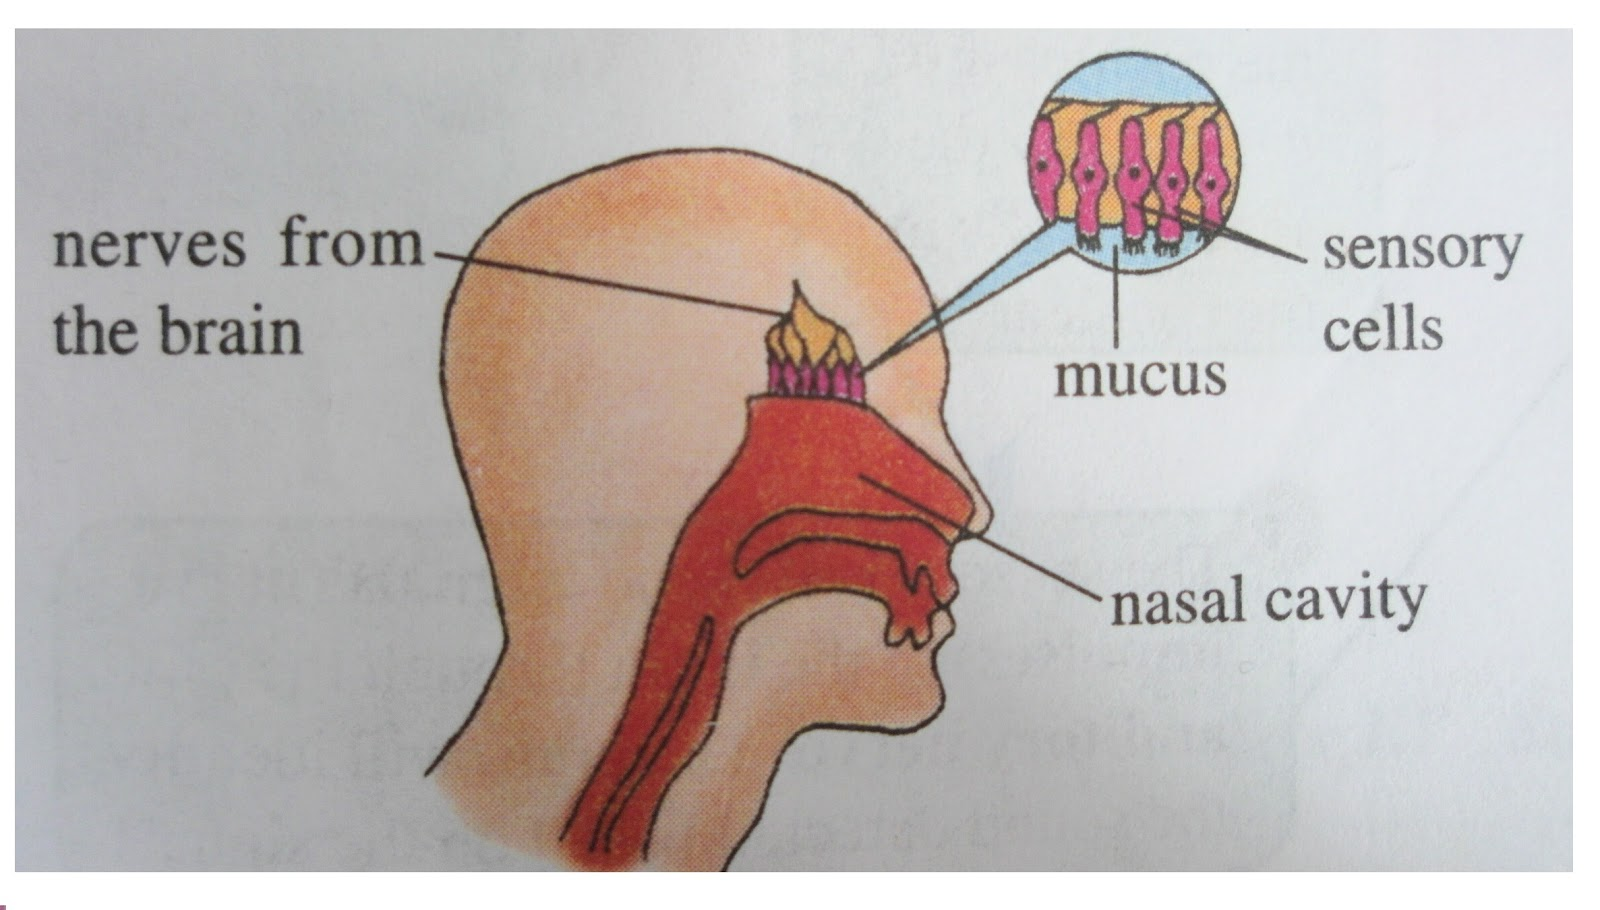 Diagram of nose during smell illustration of wiring diagram the world through our senses sense of smell rh ourhumansenses blogspot com diagram of how the nose works reaction of smell diagram ccuart Images